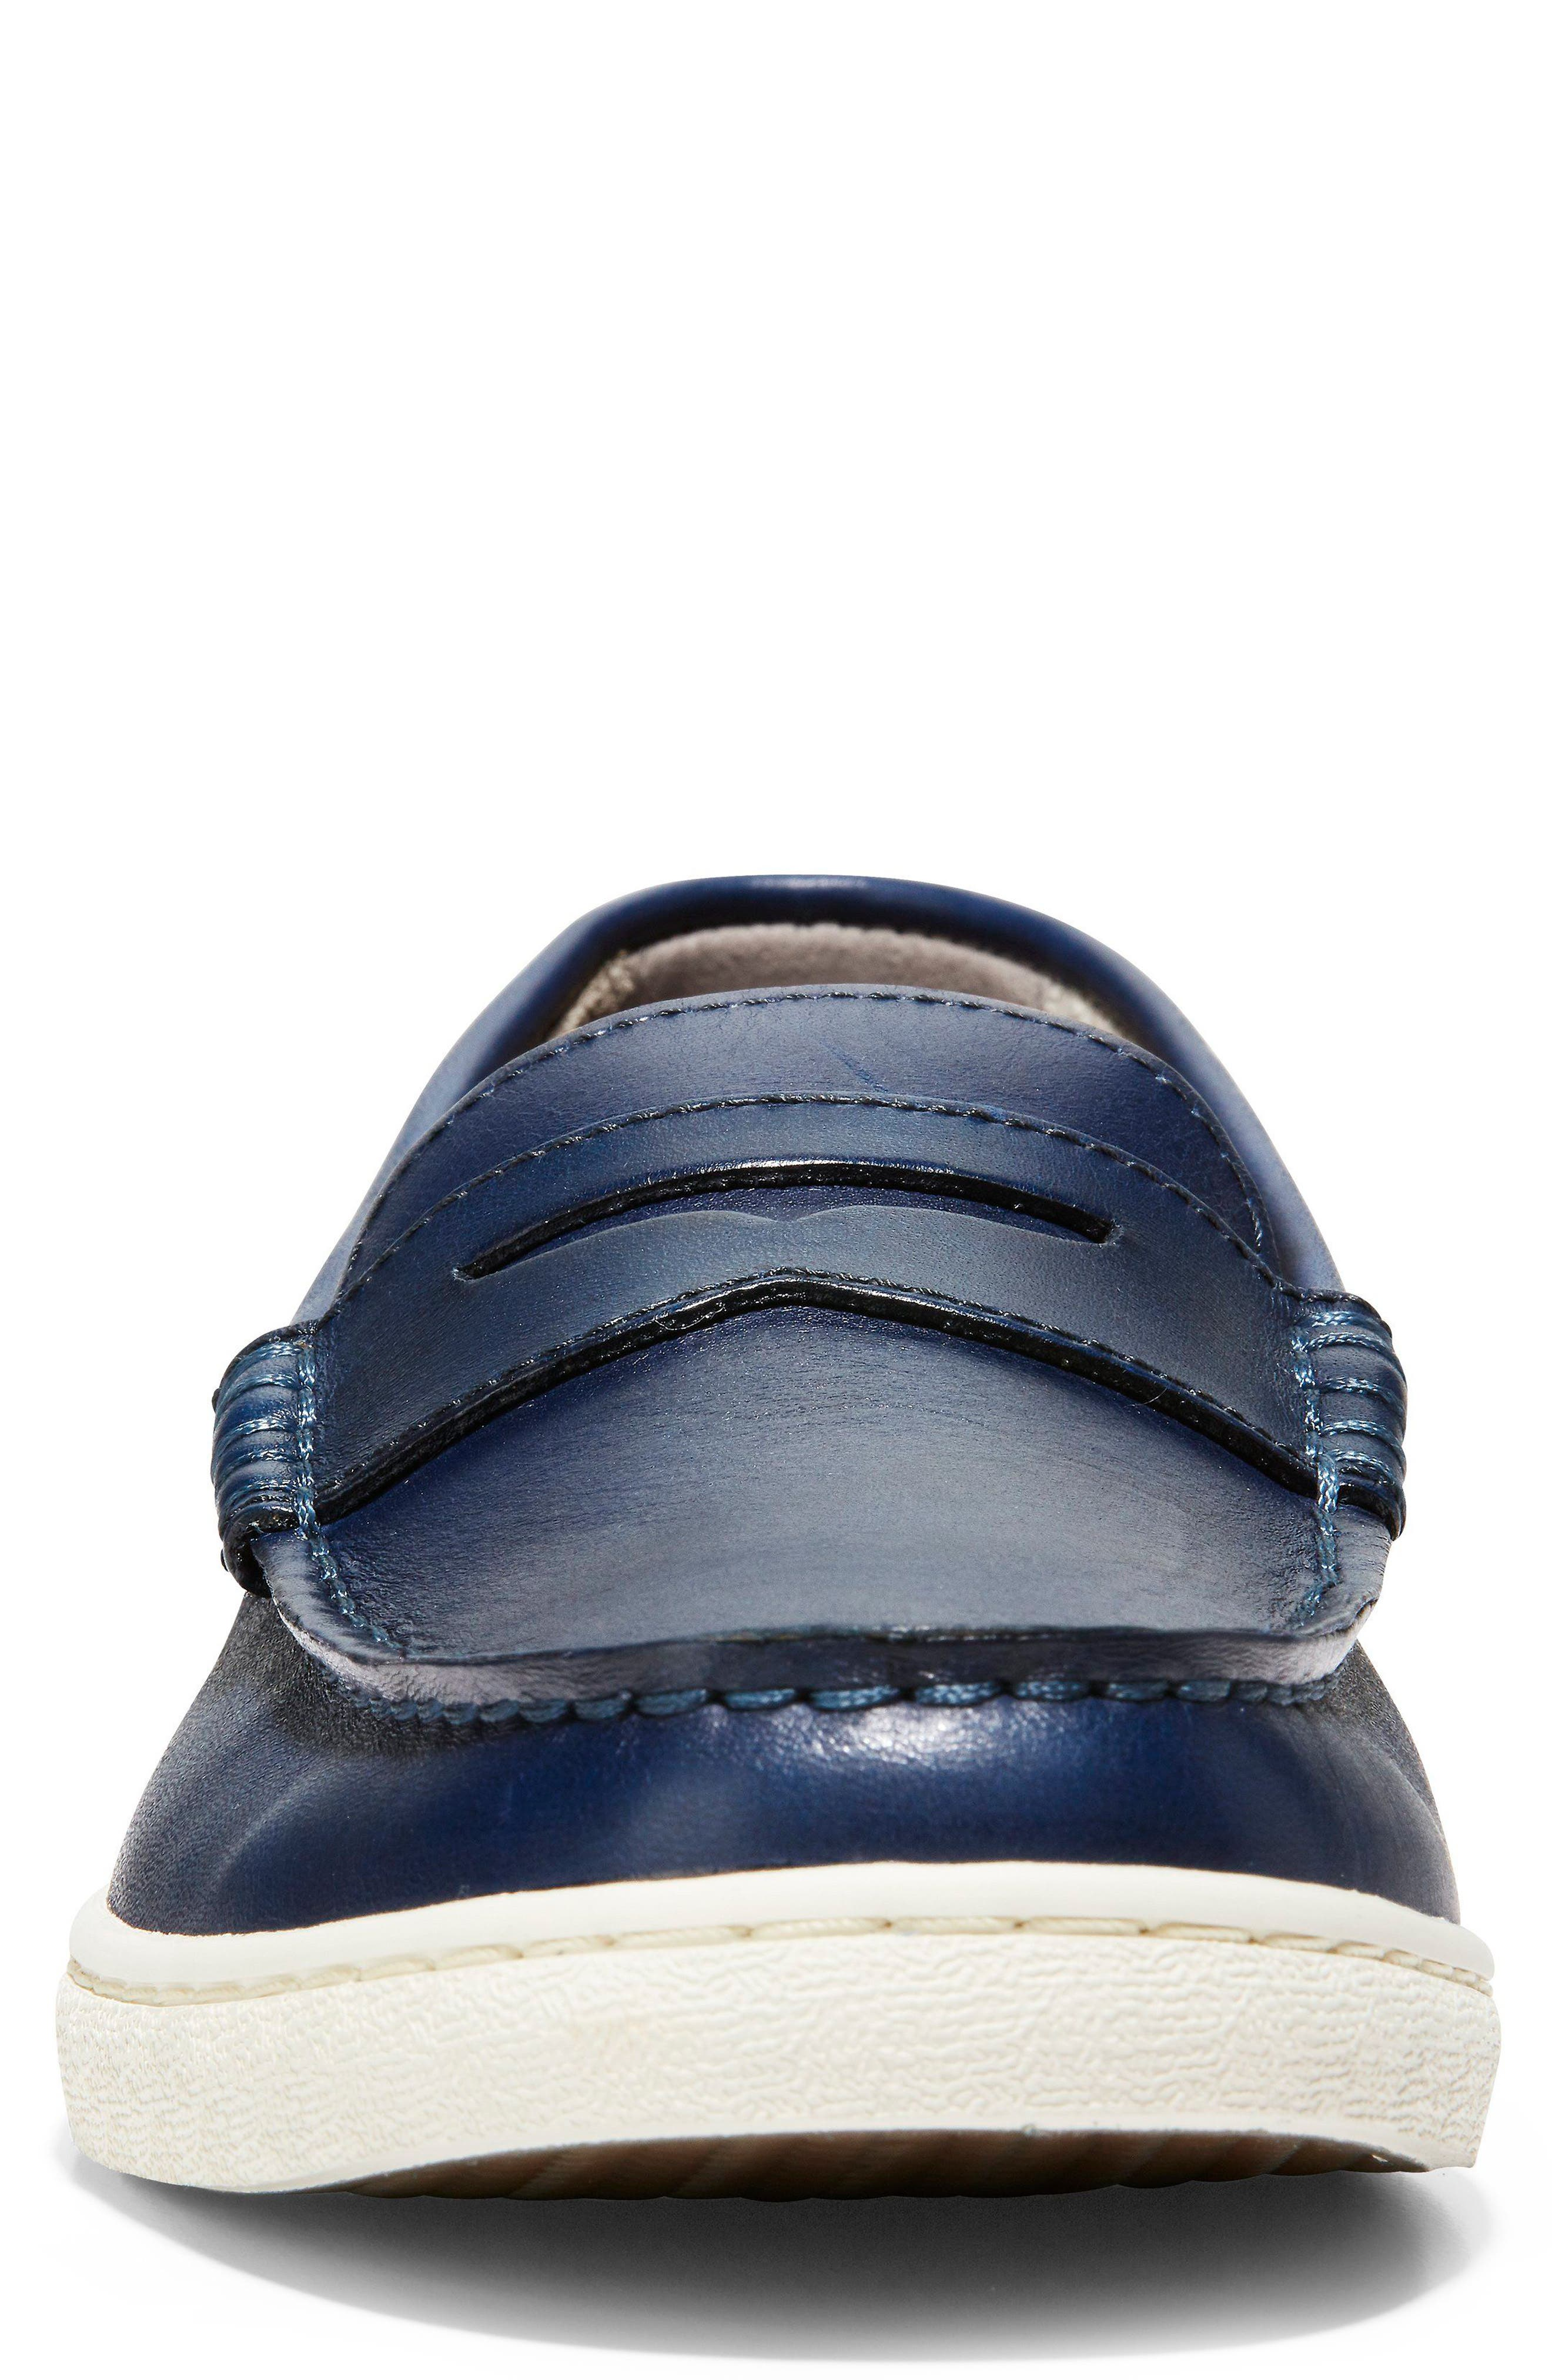 COLE HAAN, Pinch Penny Loafer, Alternate thumbnail 4, color, BLAZER BLUE LEATHER